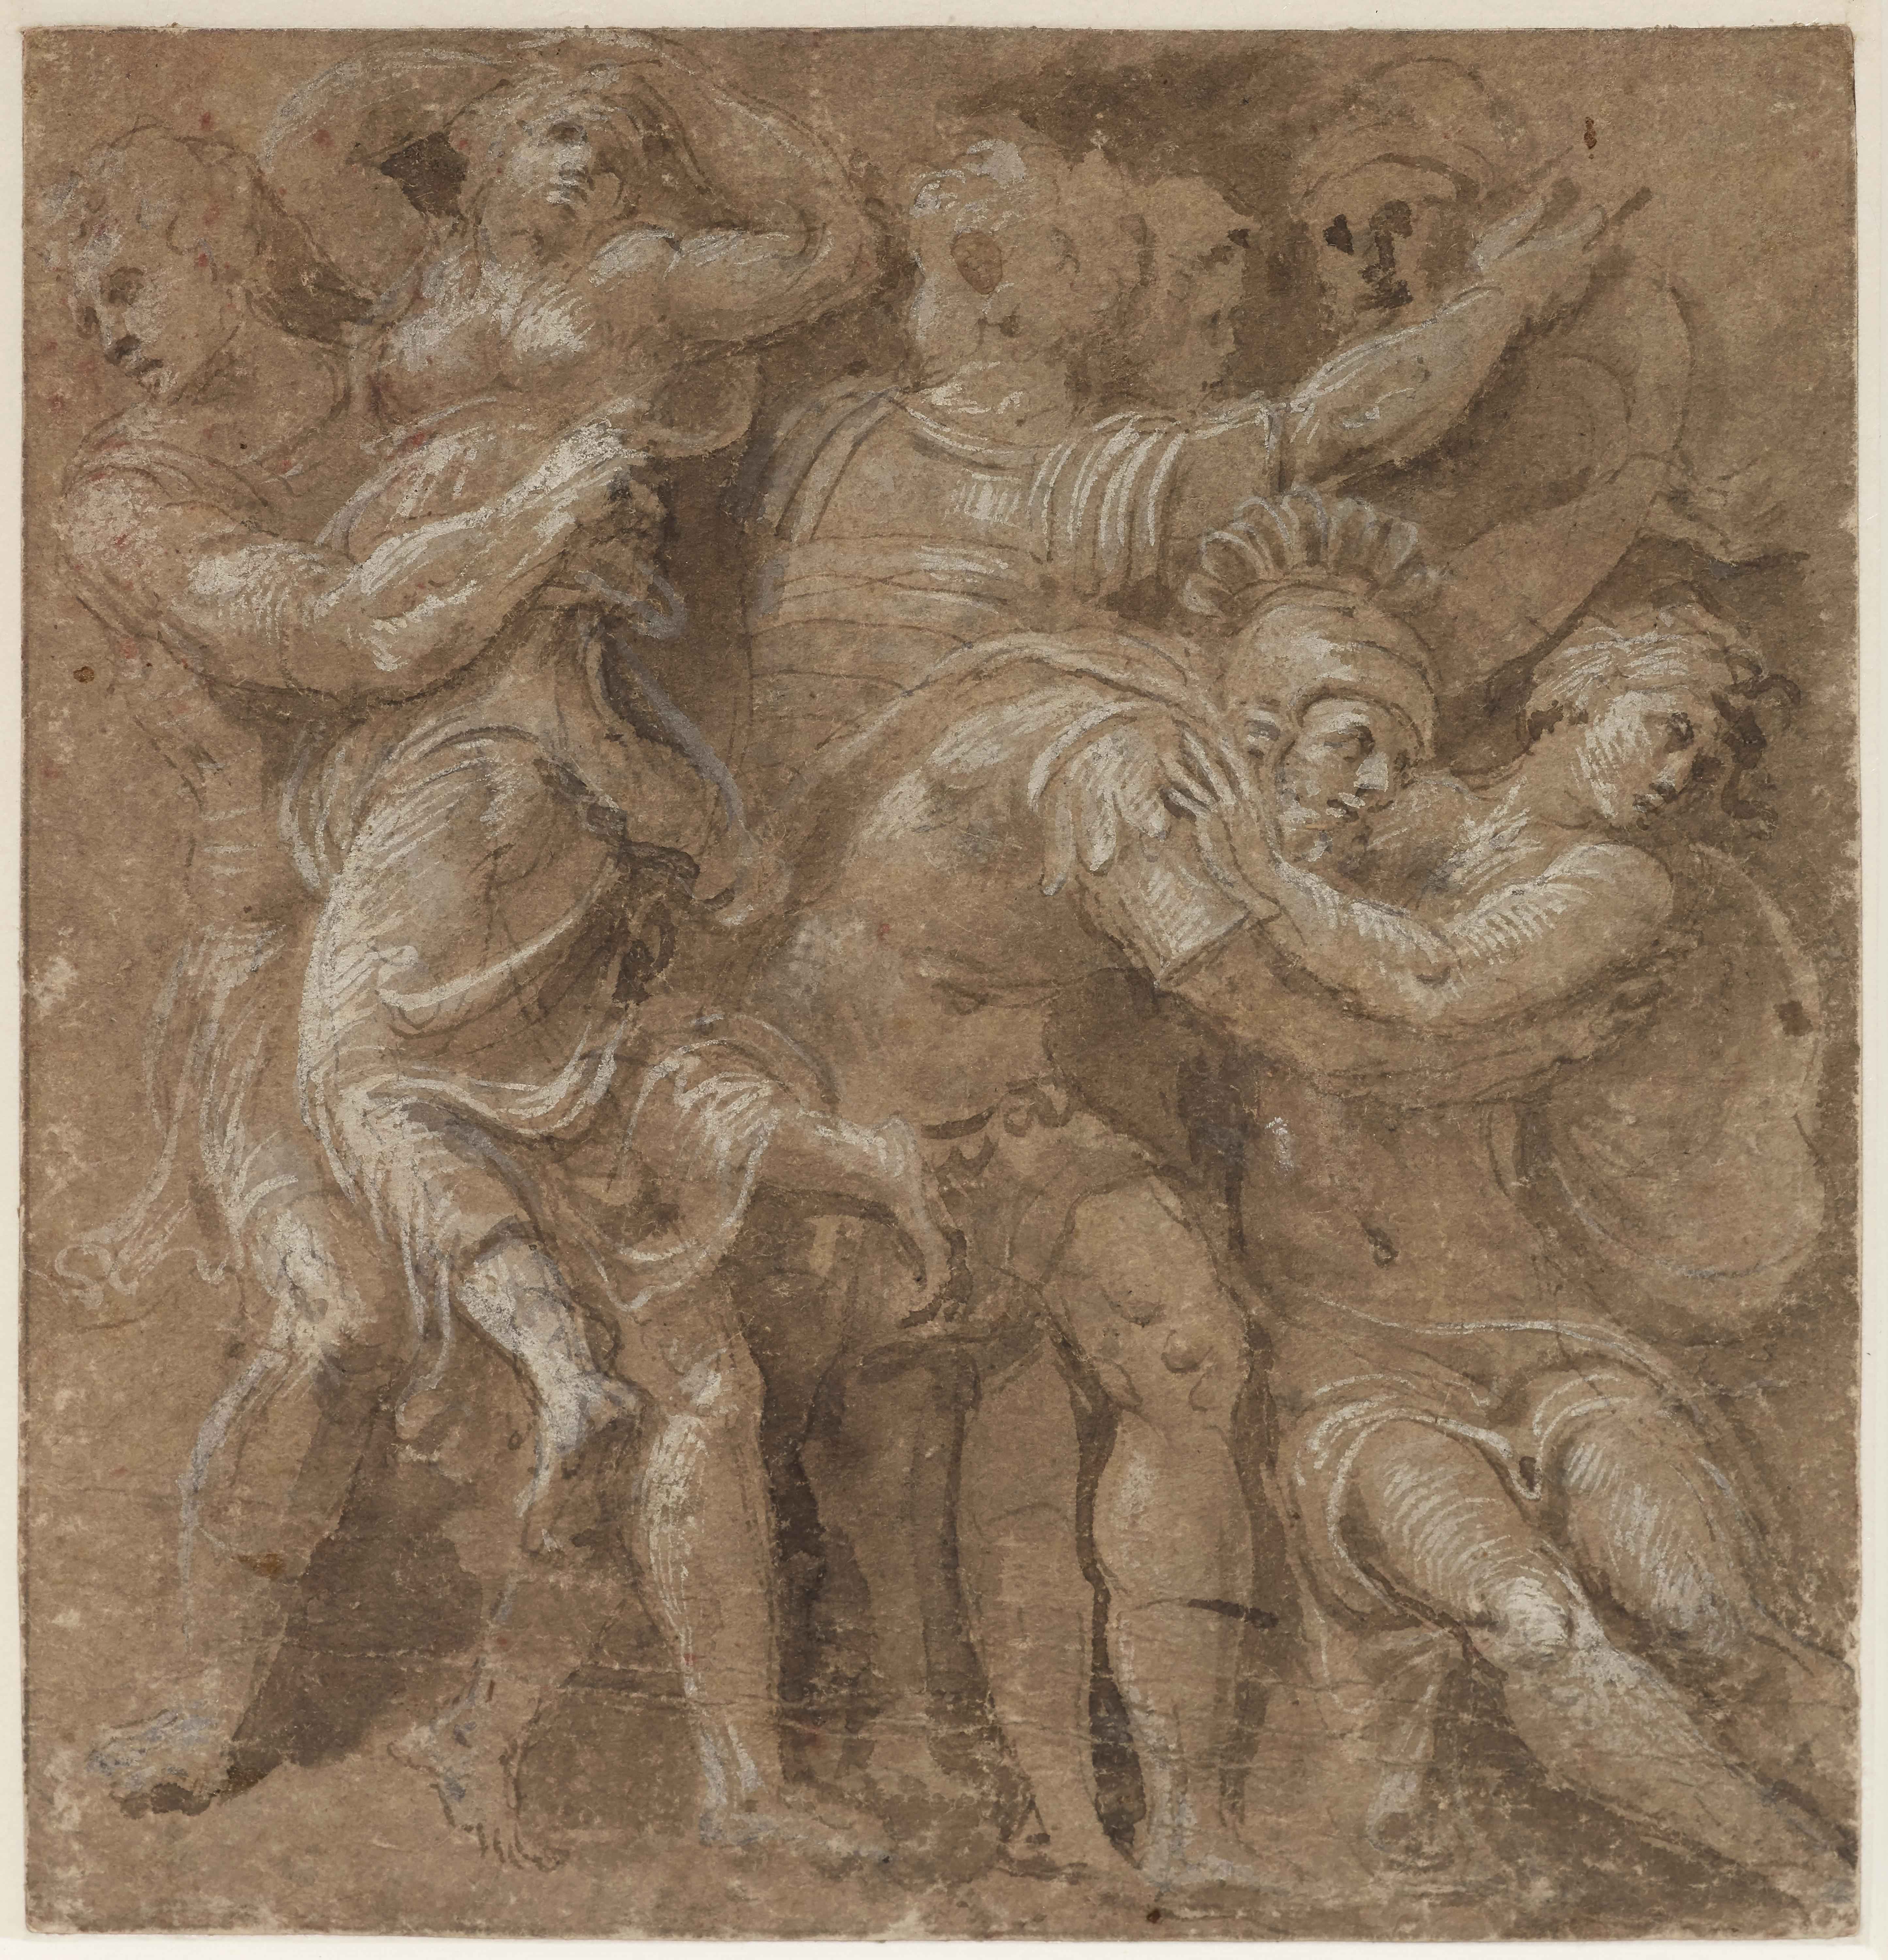 The Abduction of the Sabine Women, a drawing by Polidoro da Caravaggio